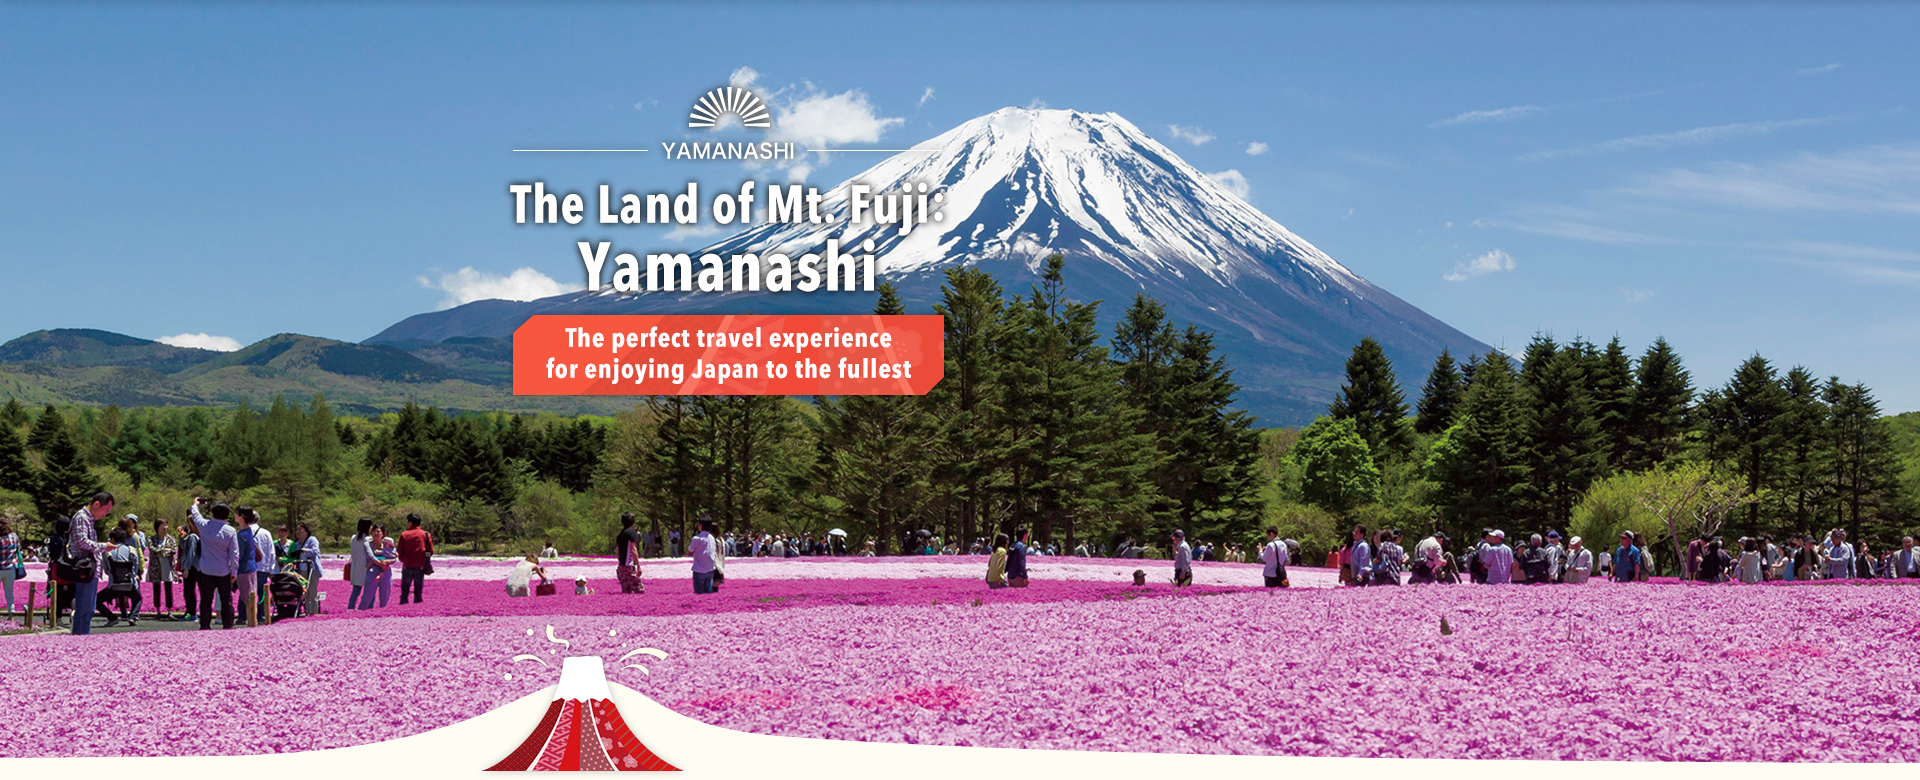 The Land of Mt. Fuji:Yamanashi The perfect travel experience for enjoying Japan to the fullest